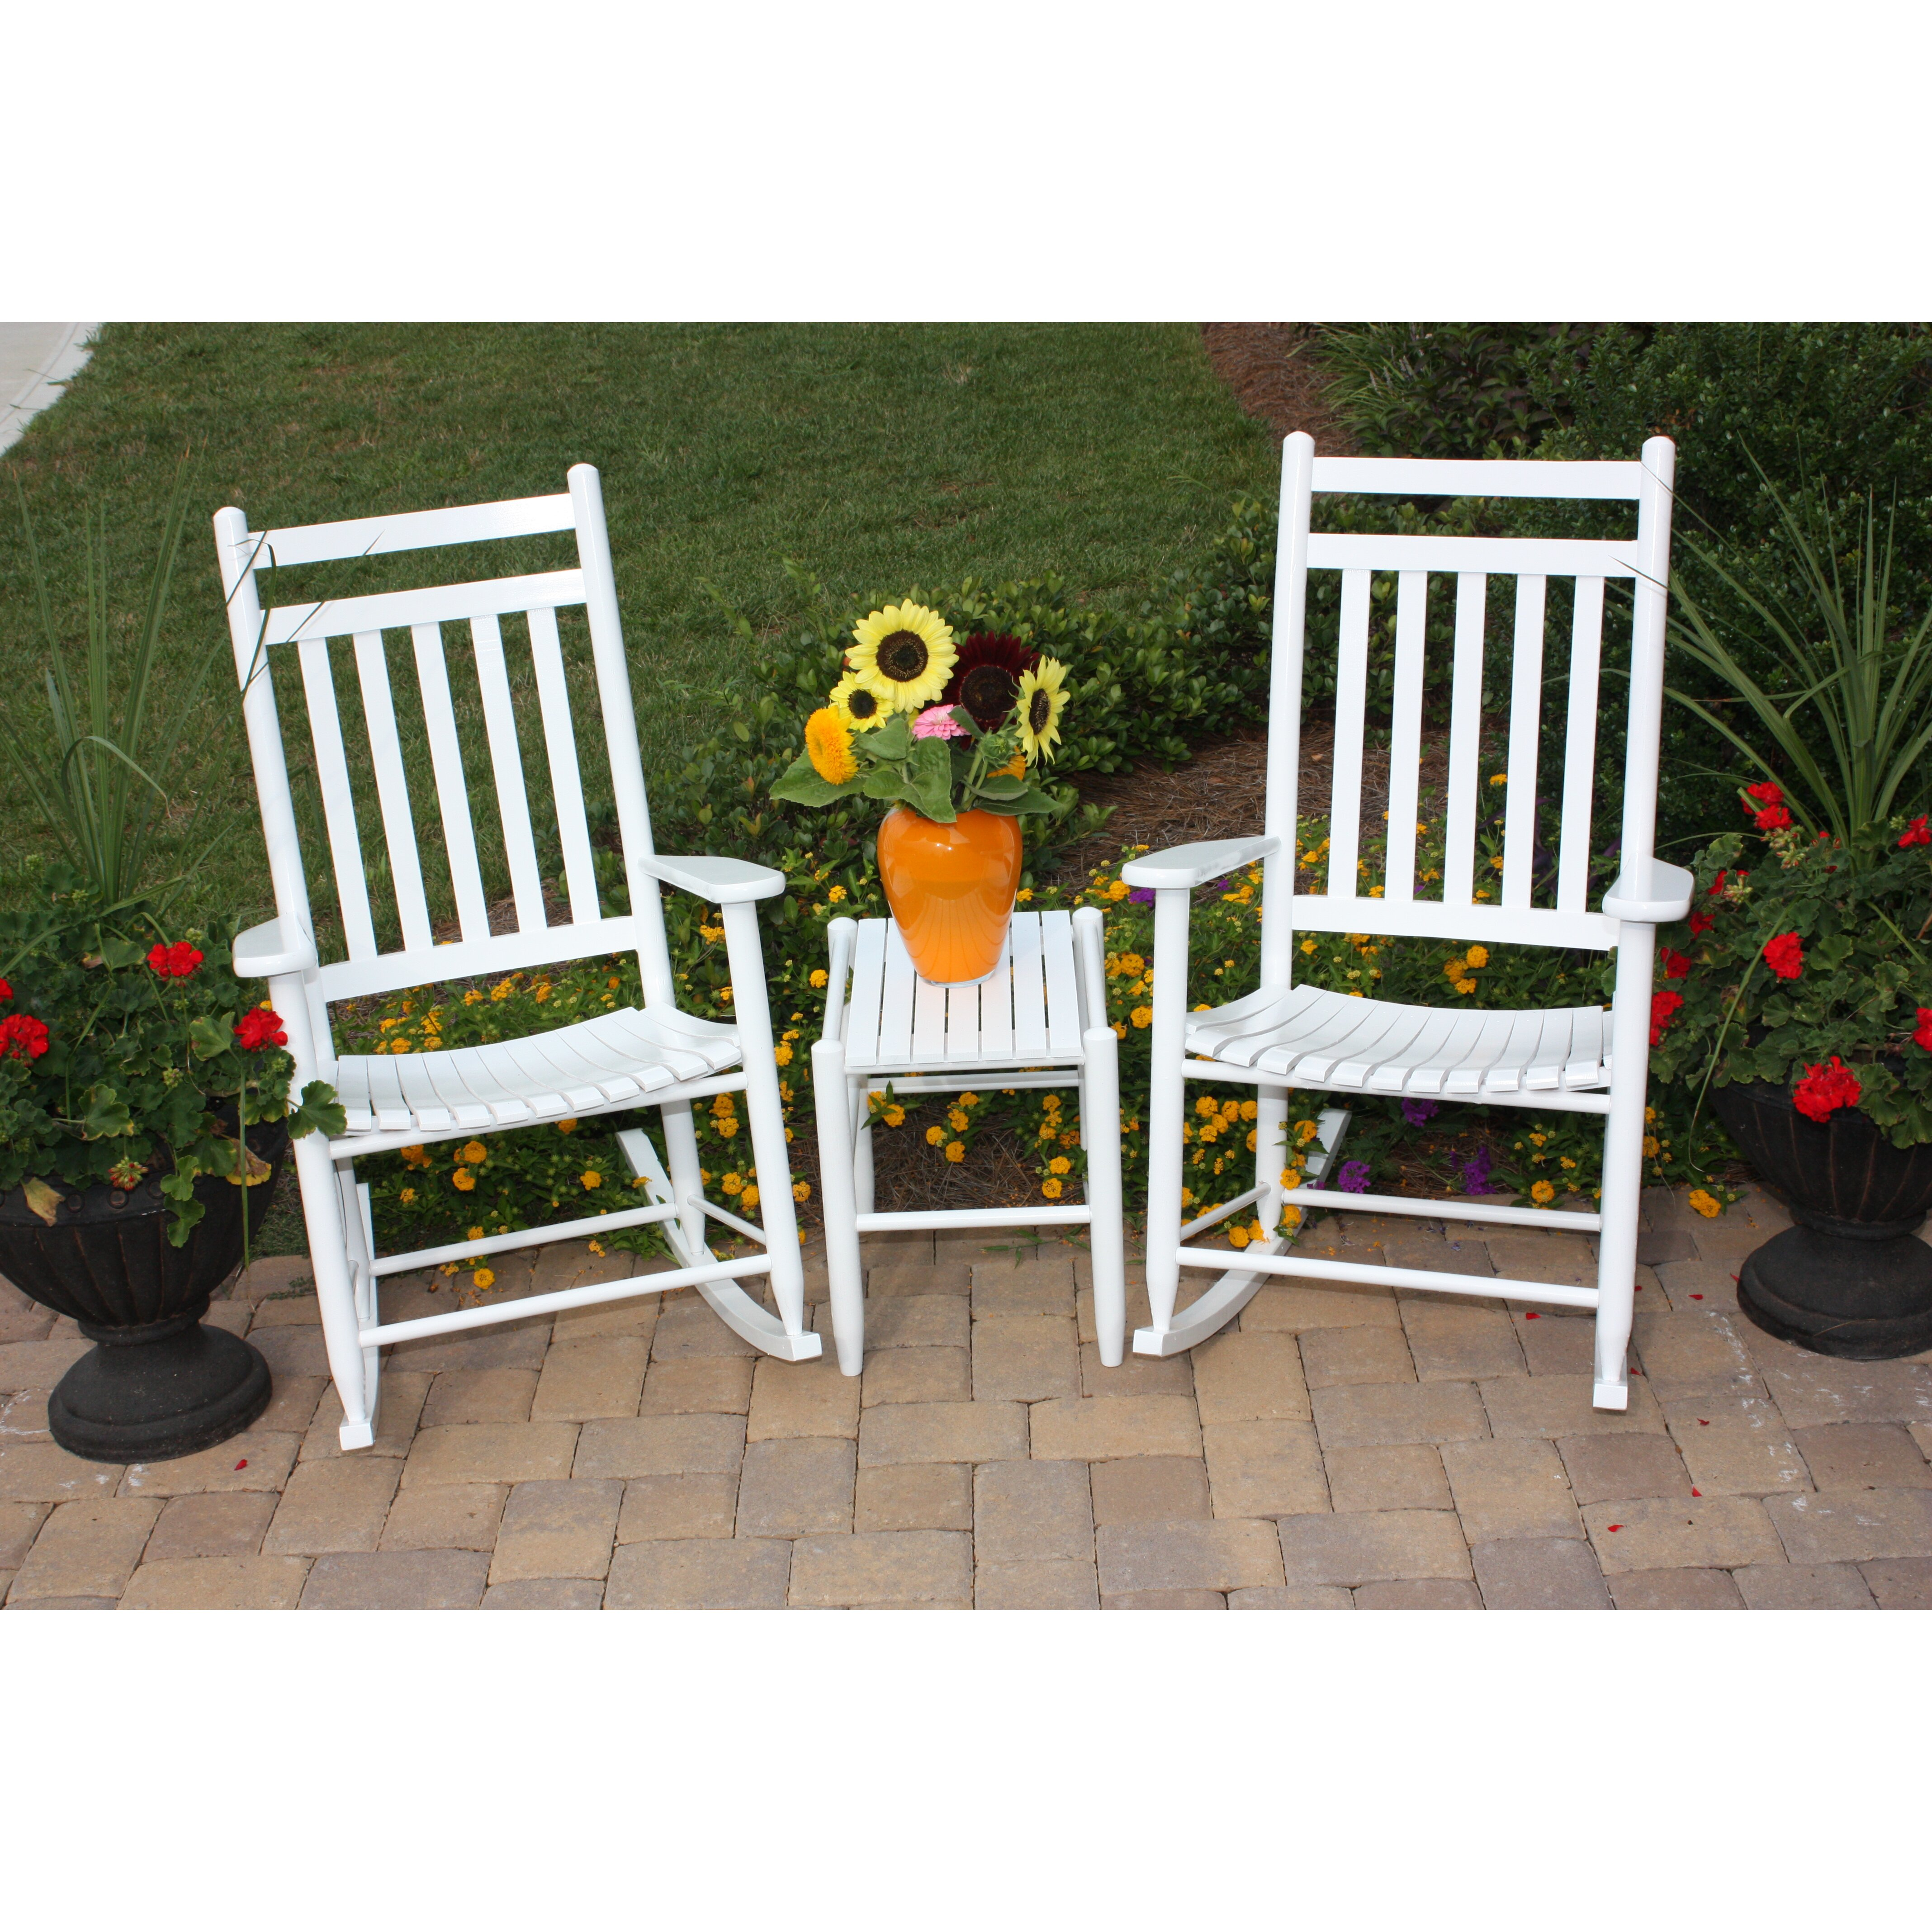 Dixie Seating 3 Piece Adult Slat Seat Porch Rocking Chair ...